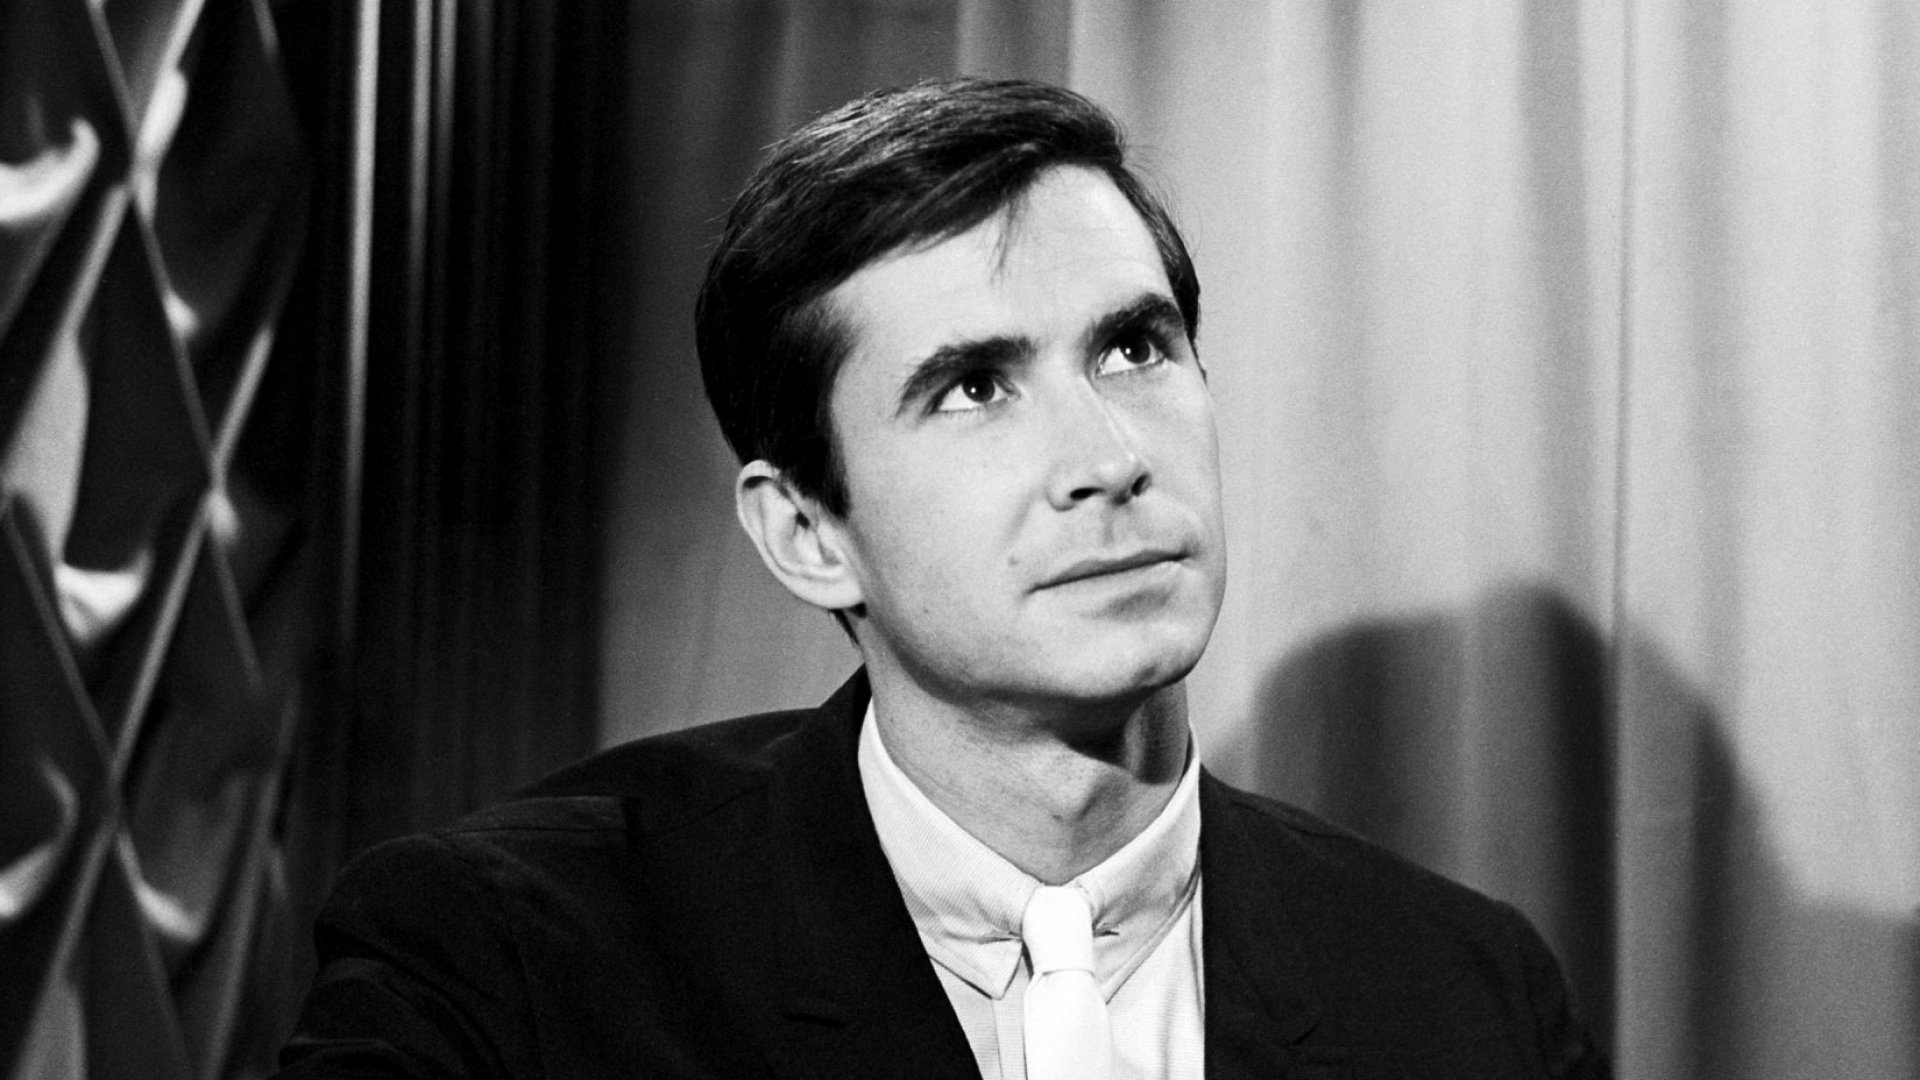 Anthony Perkins played Norman Bates in <i>Psycho</i>